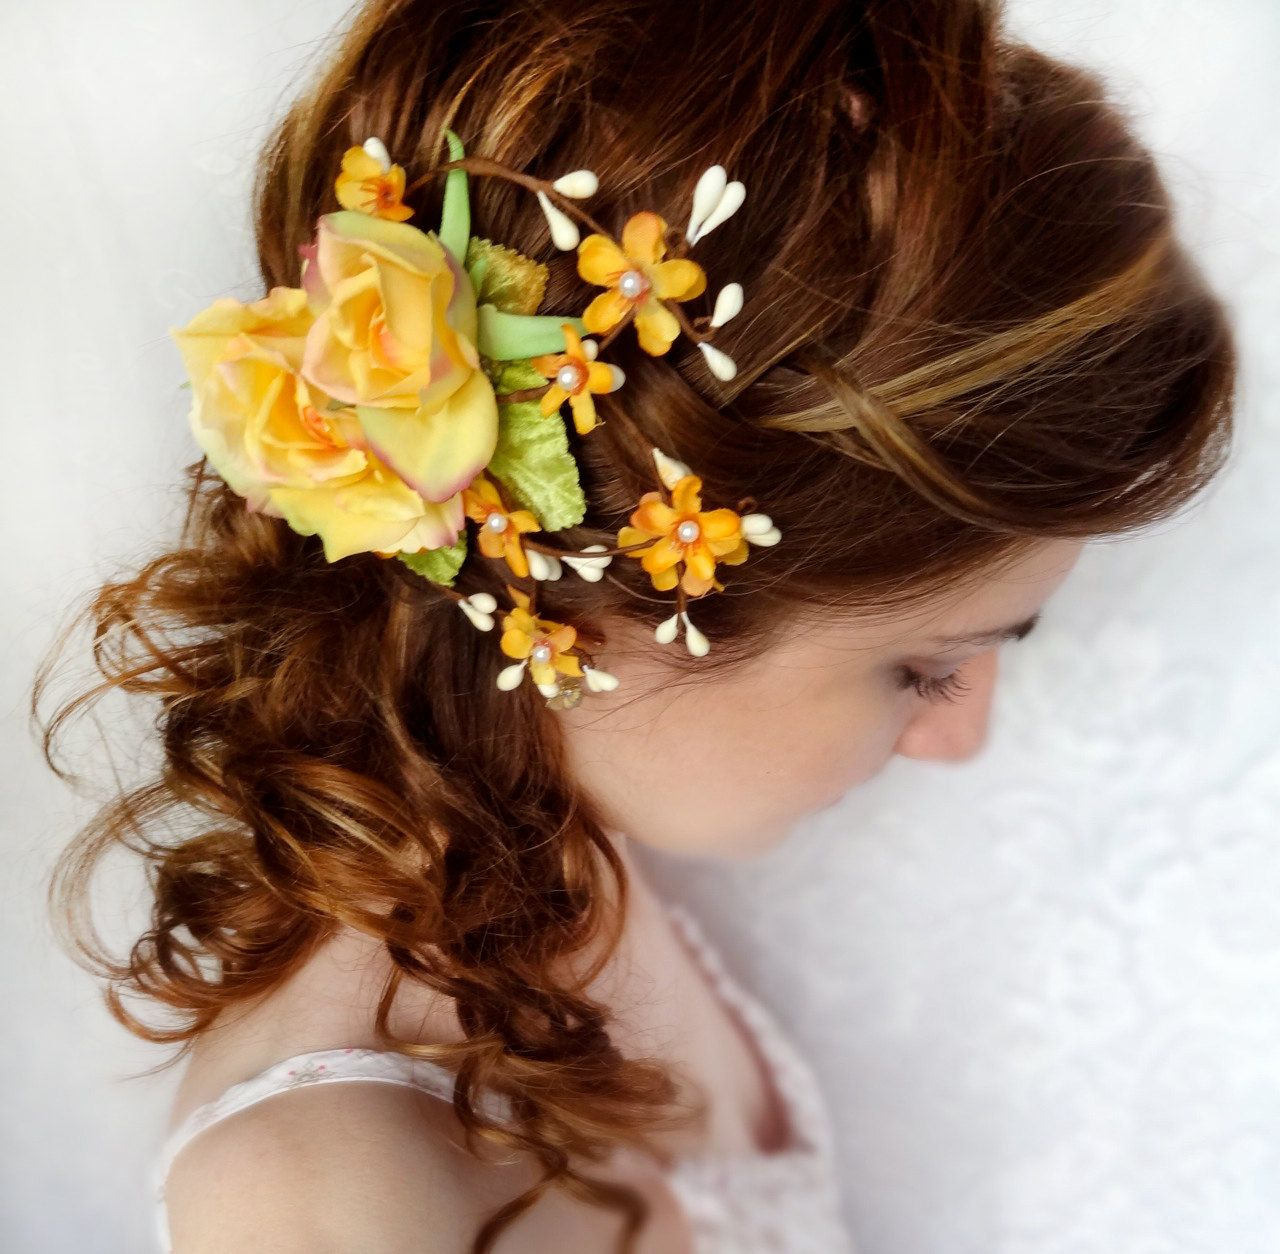 yellow flower hair clip, natural twiggy accessory